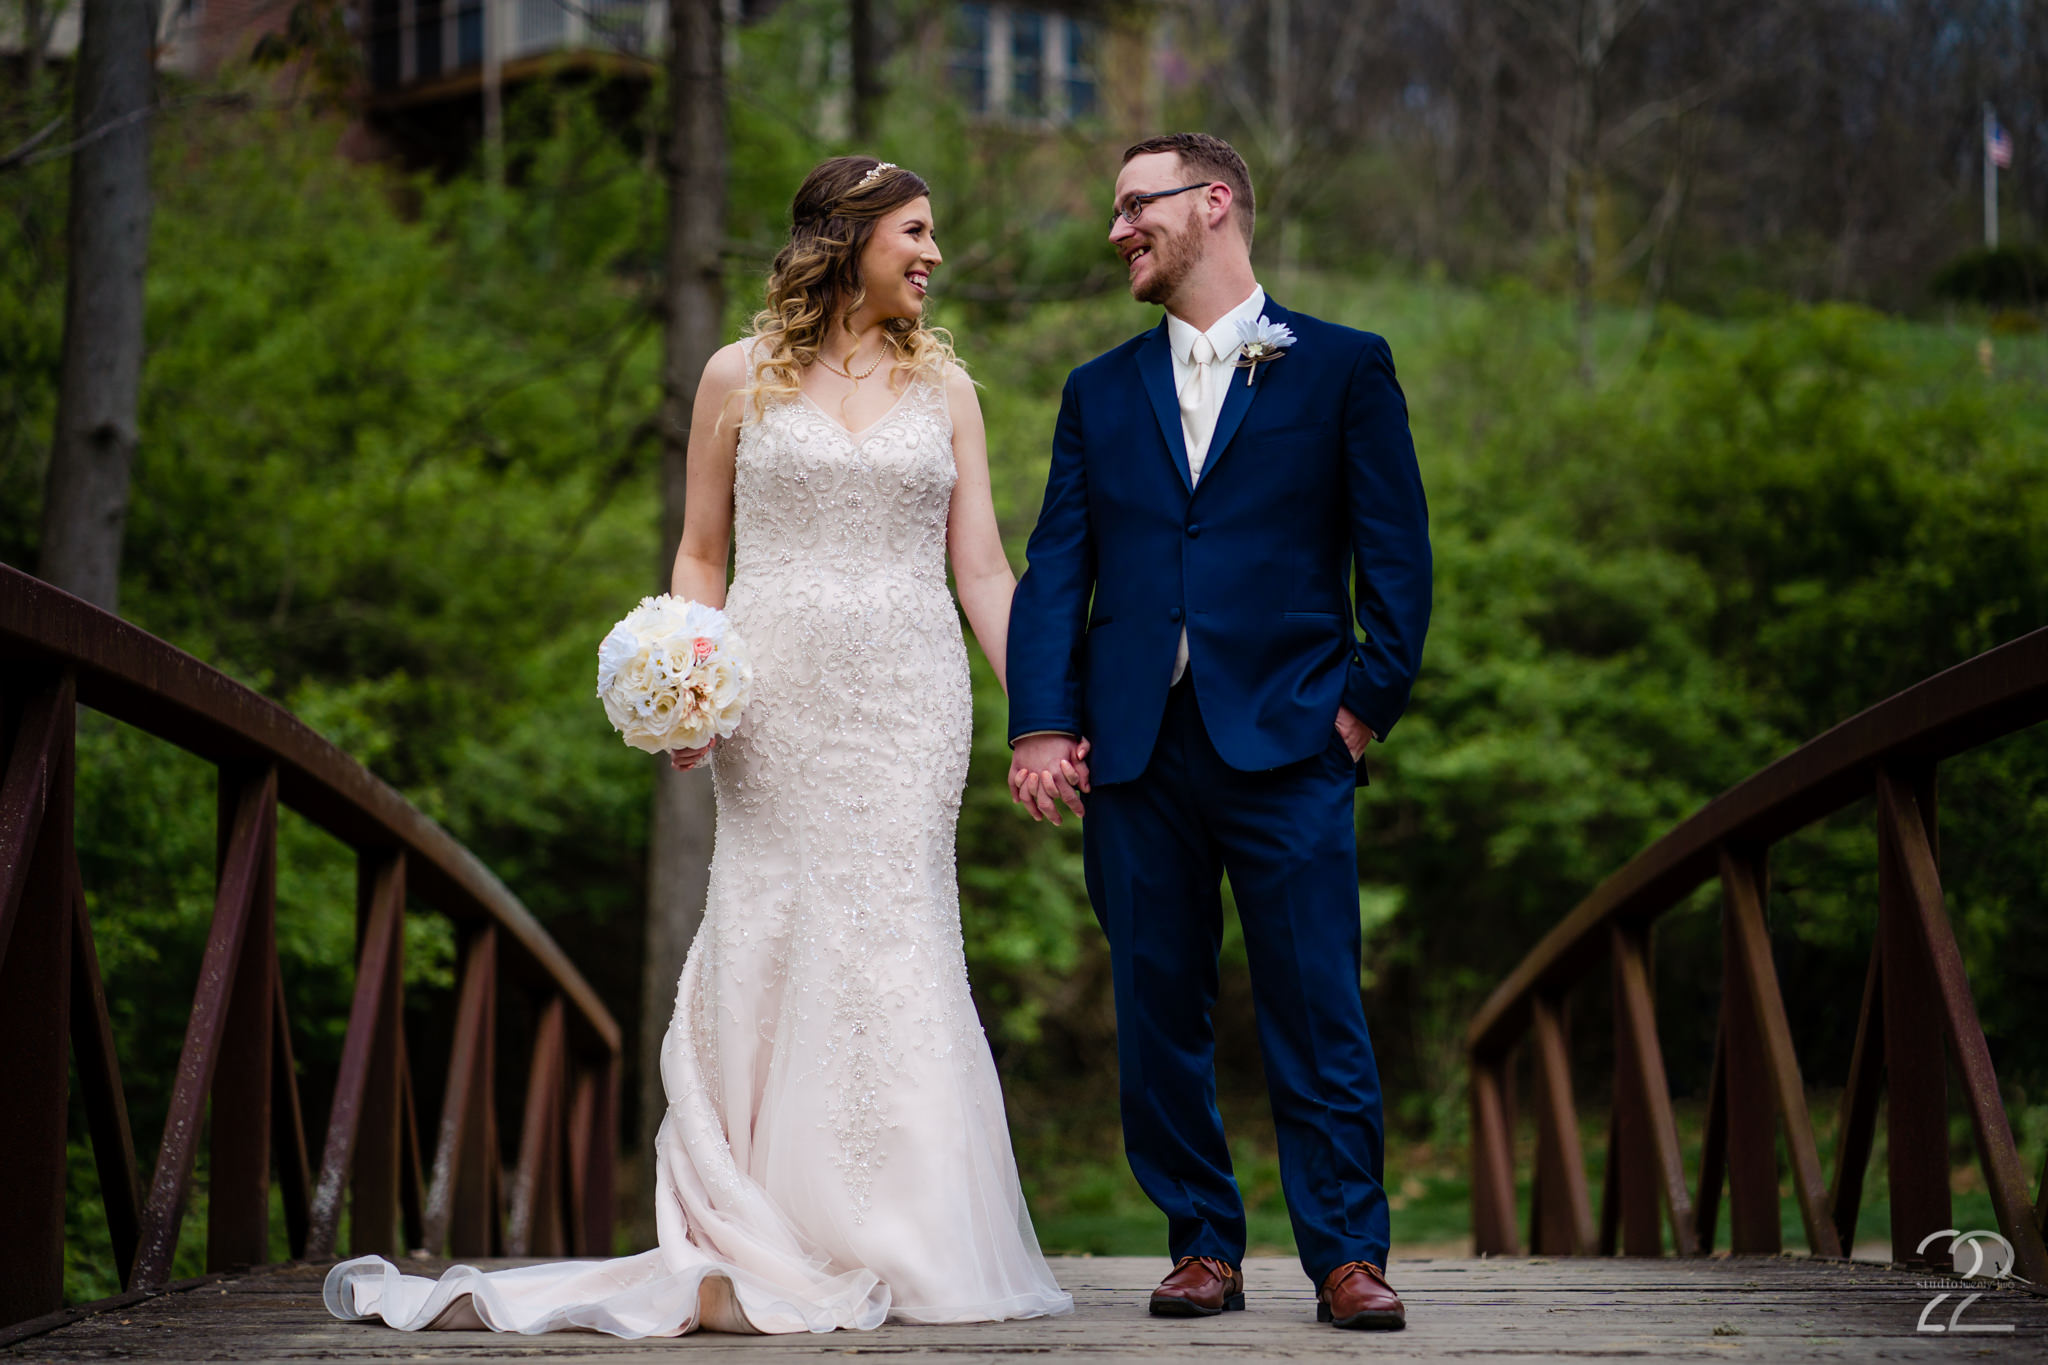 Nick and Erica chose to get married at Aston Oaks Golf Club in Cincinnati, Ohio on a warm spring day. Doing their first look on a beautiful bridge alongside one of Aston Oaks